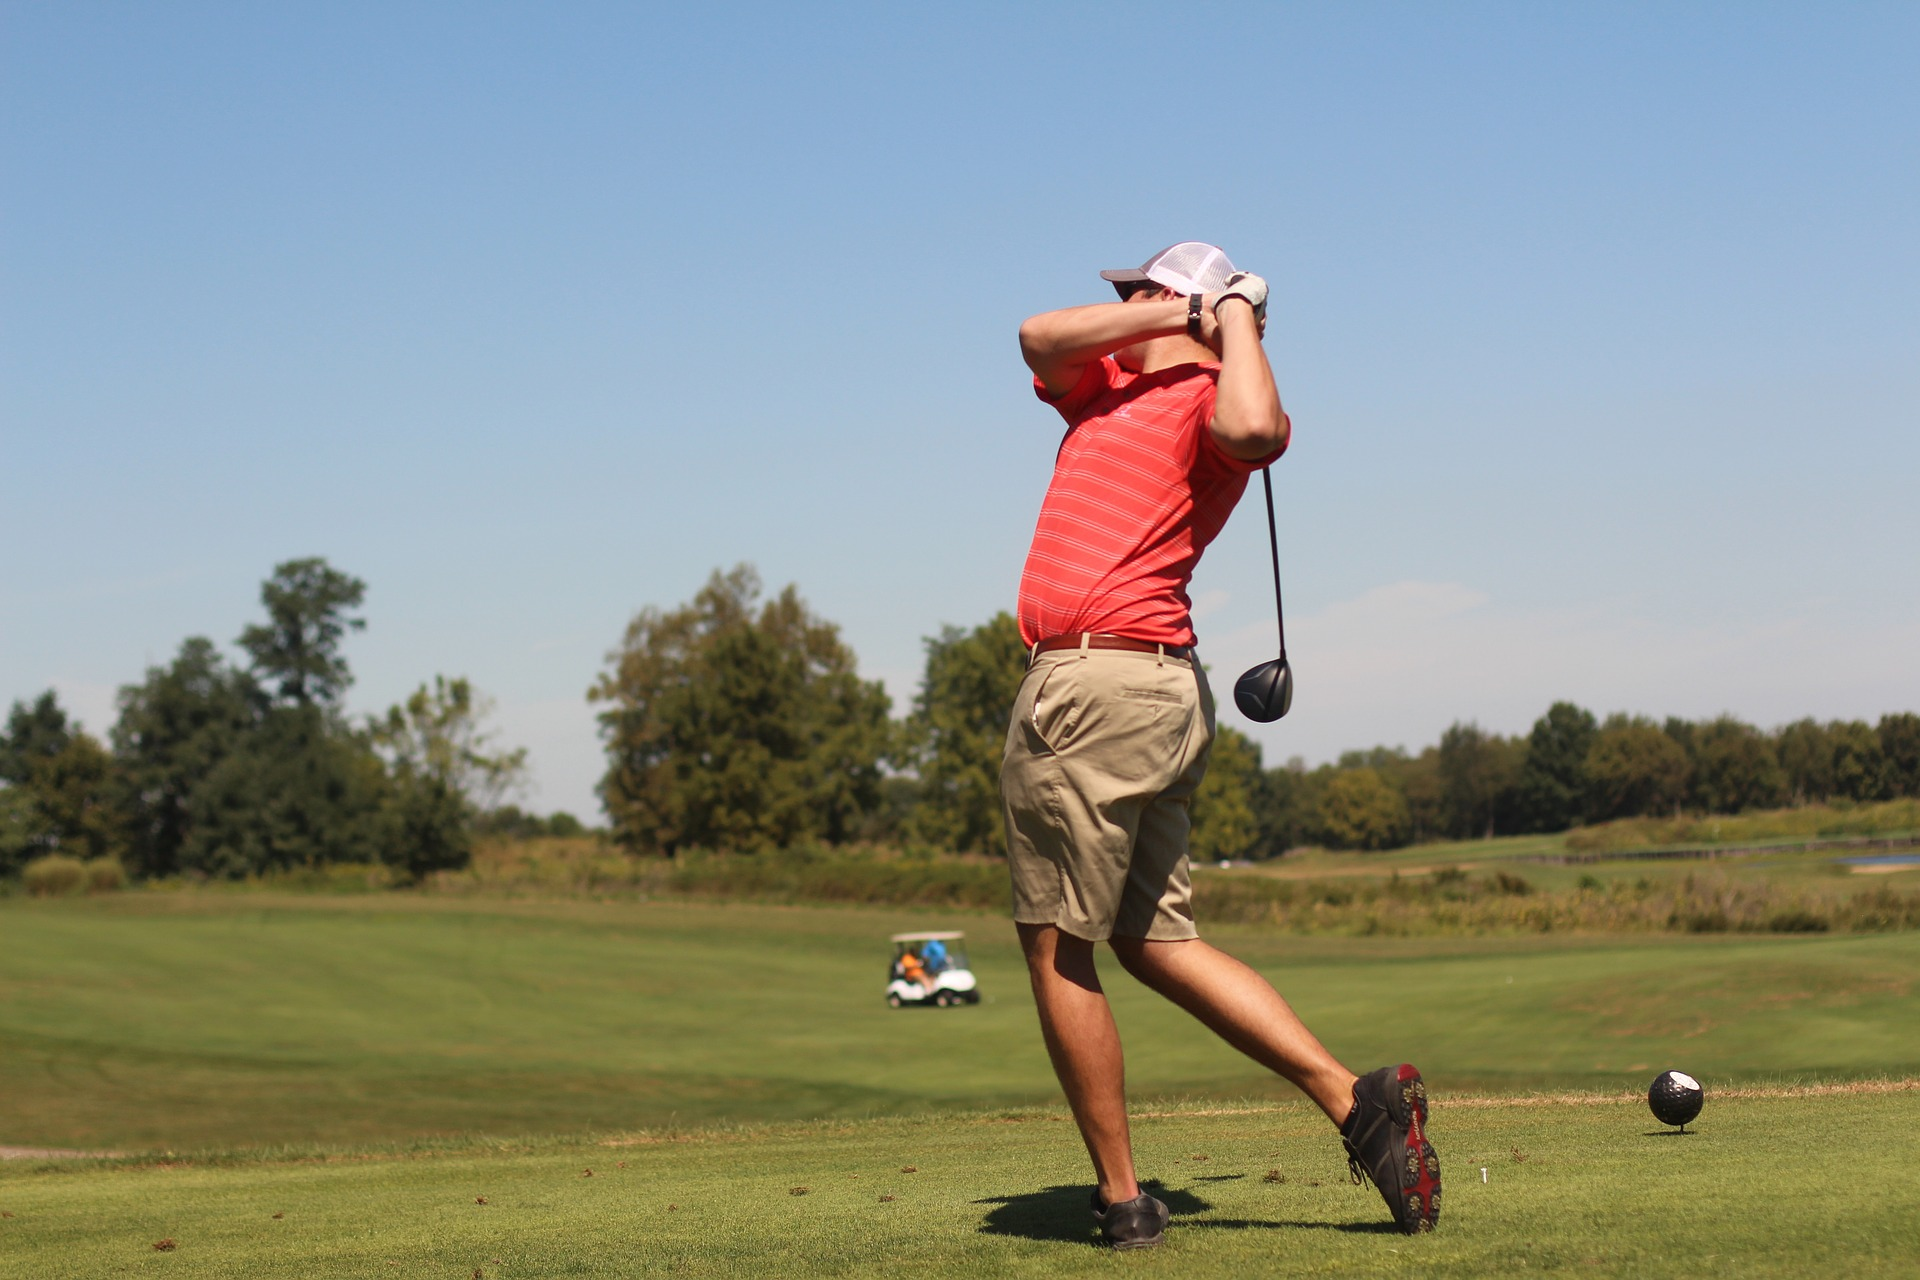 Man teeing off at a golf course